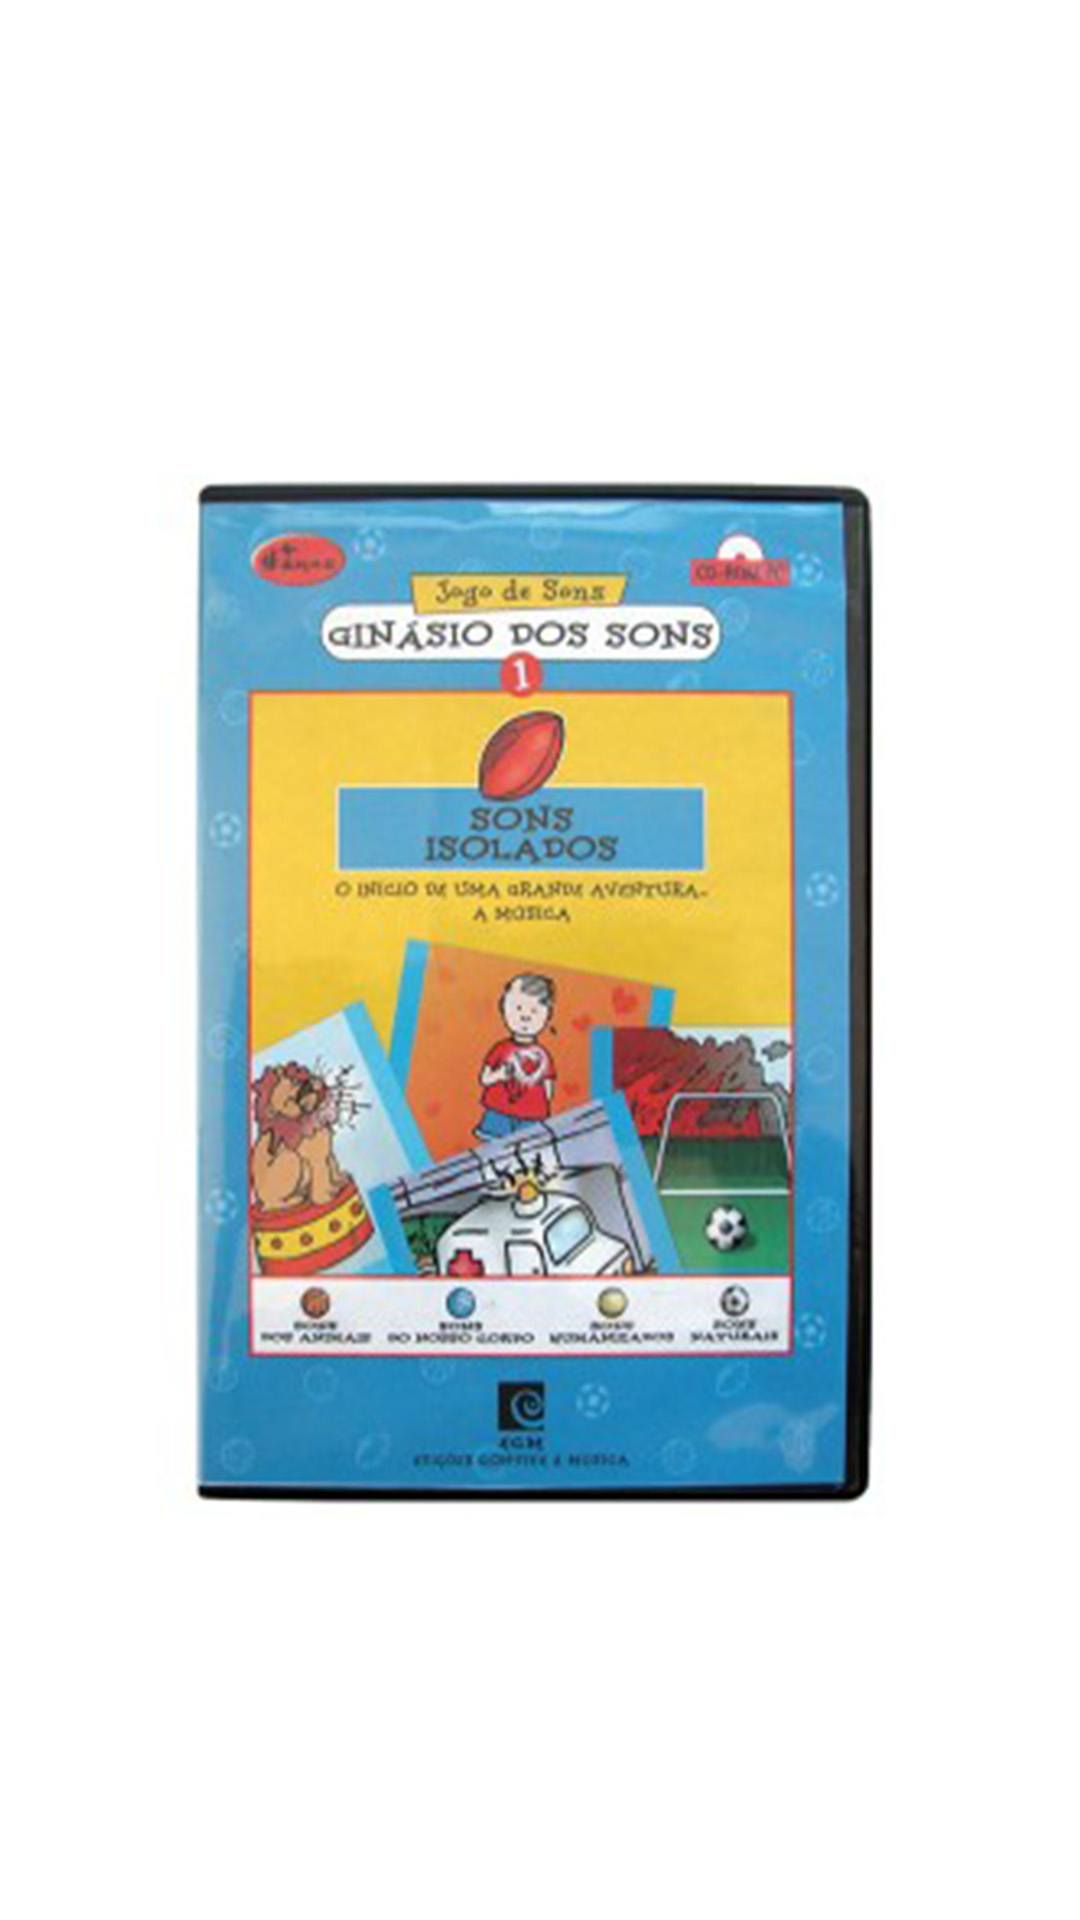 Ginásio dos Sons 1 - Sons isolados (CD-Rom)